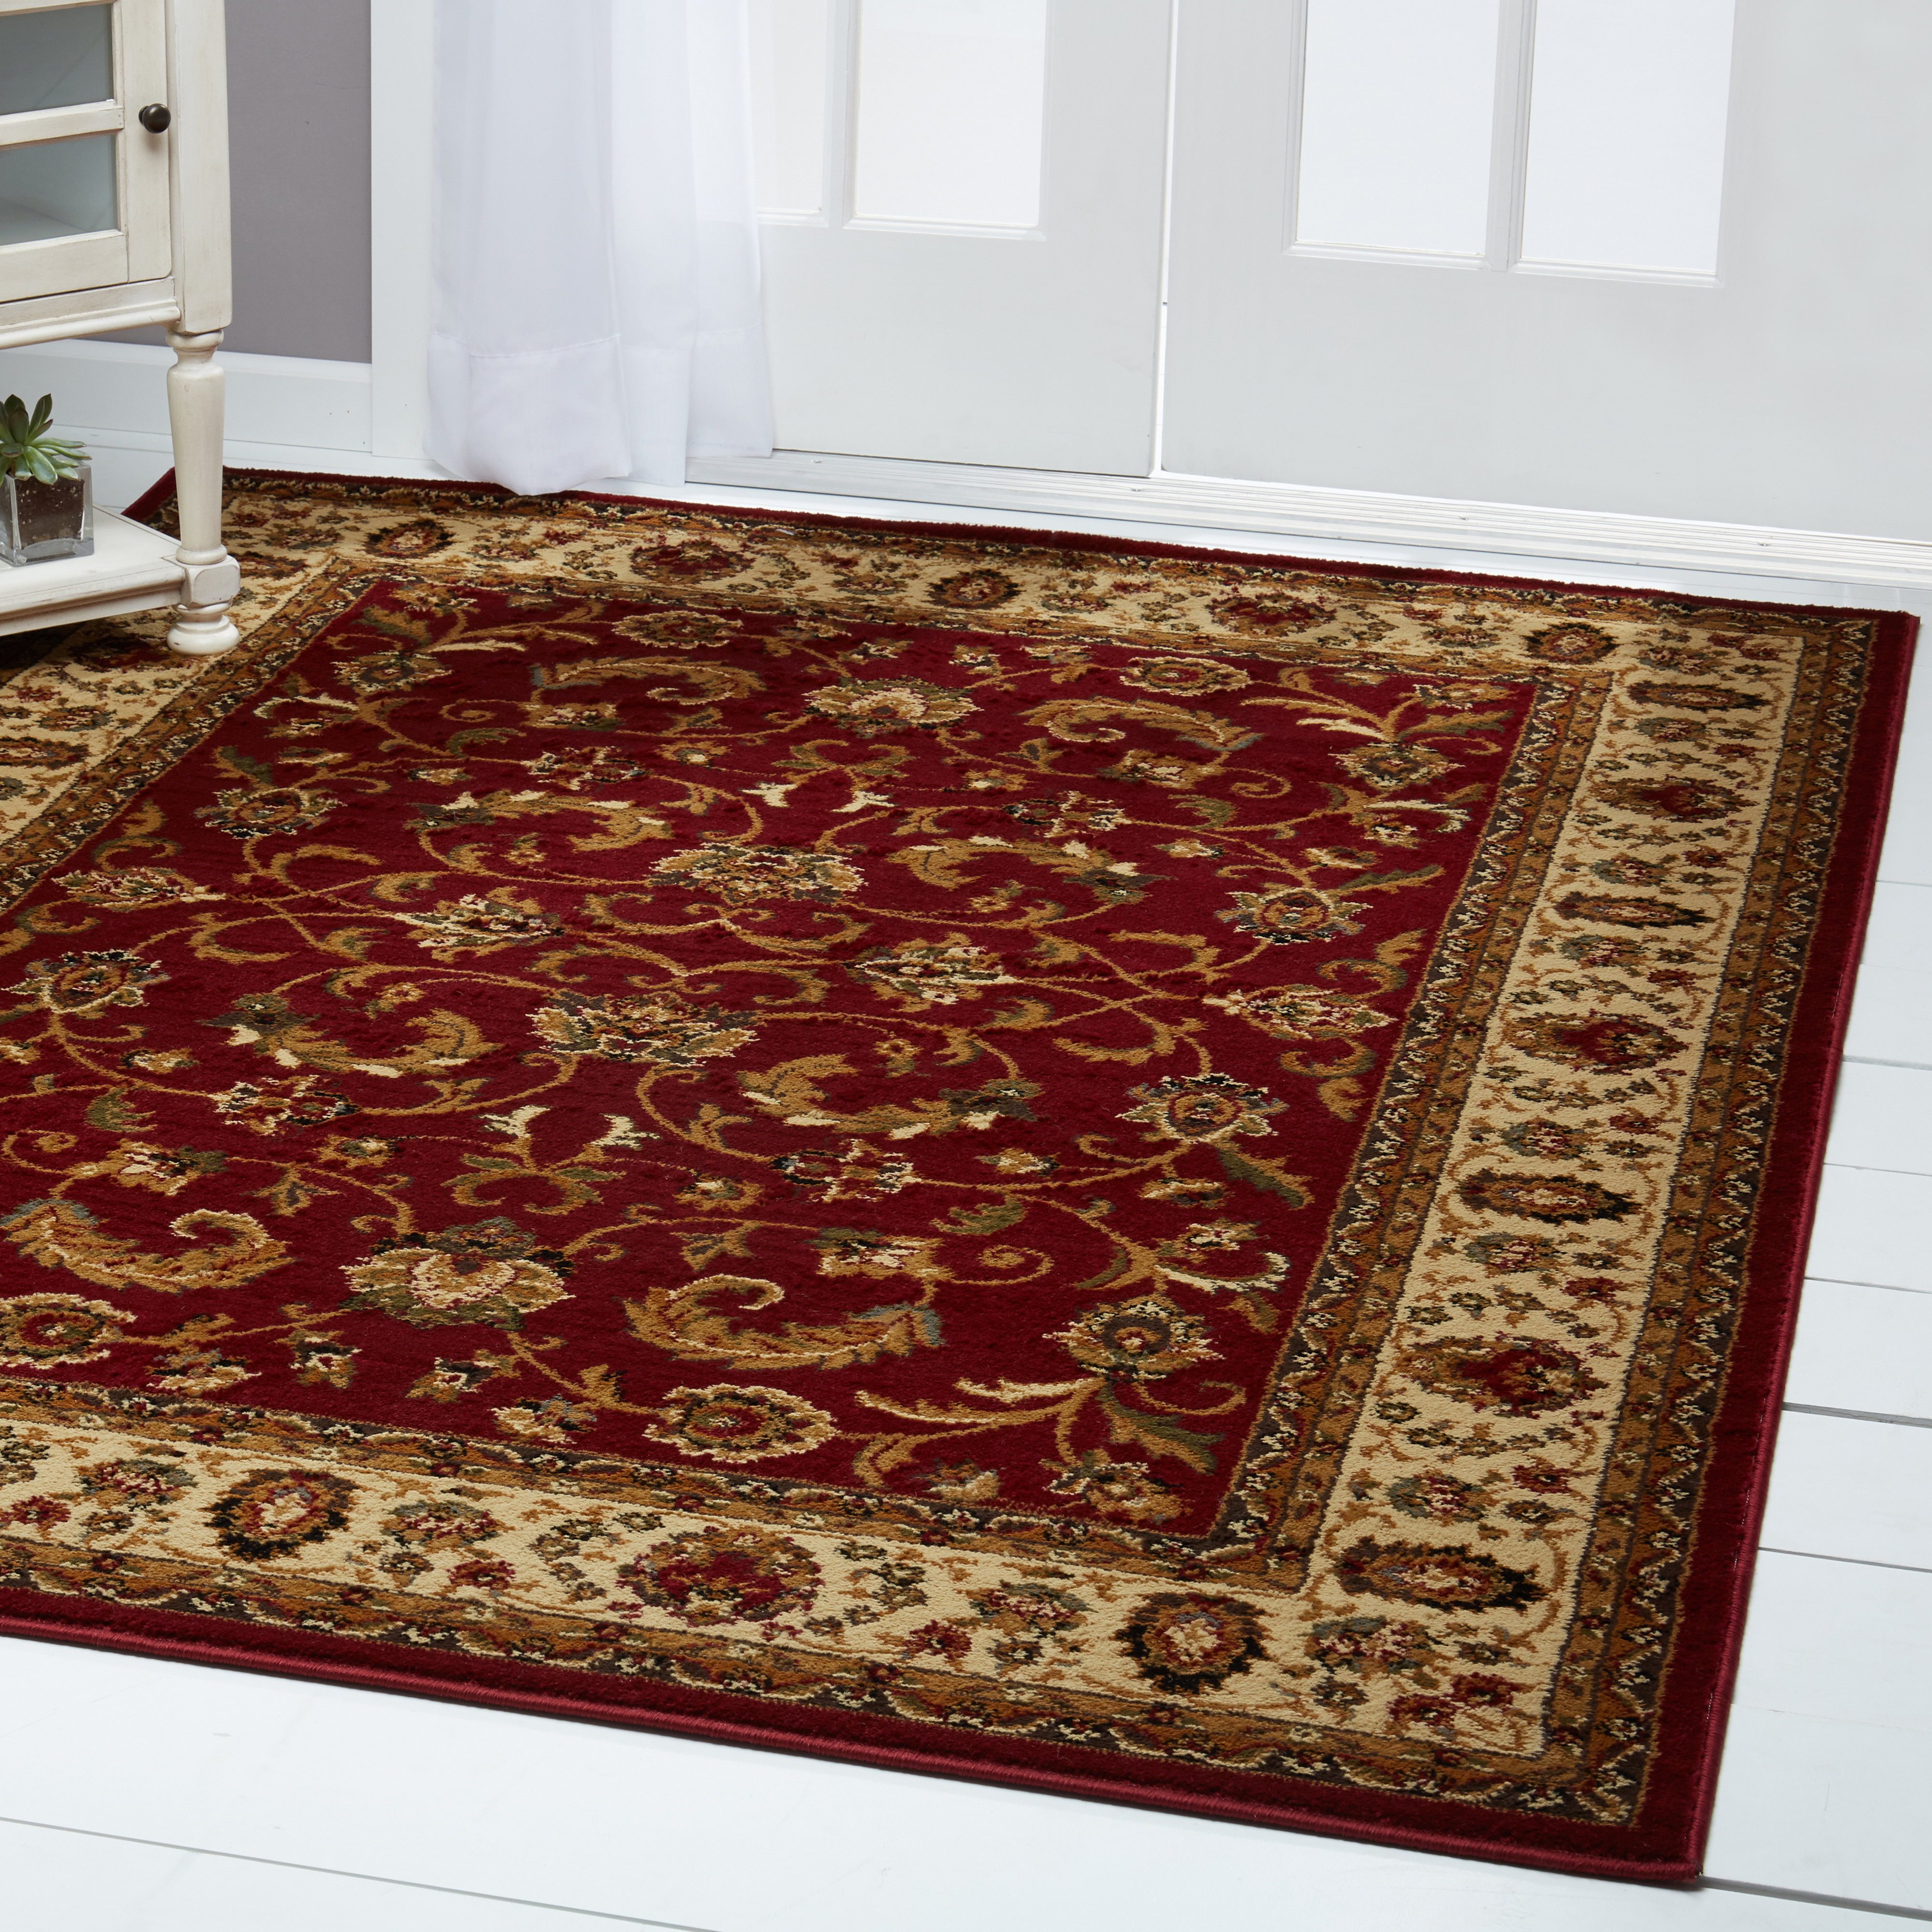 Home Dynamix Royalty Traditional Border Ivory Area Rug by Home Dynamix